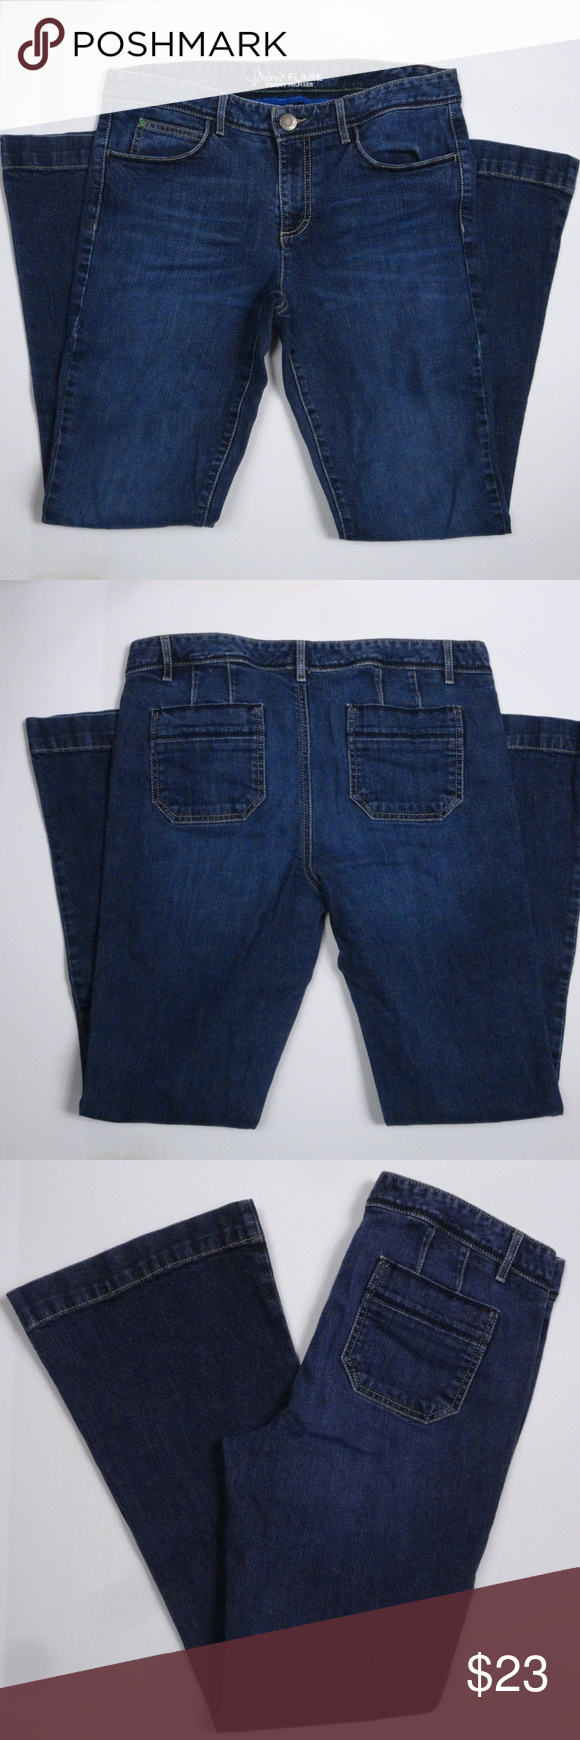 94033fcc168ab Tommy Hilfiger Retro Spirit Flare Jeans - 12R Tommy Hilfiger Retro Spirit Flare  Jeans Size